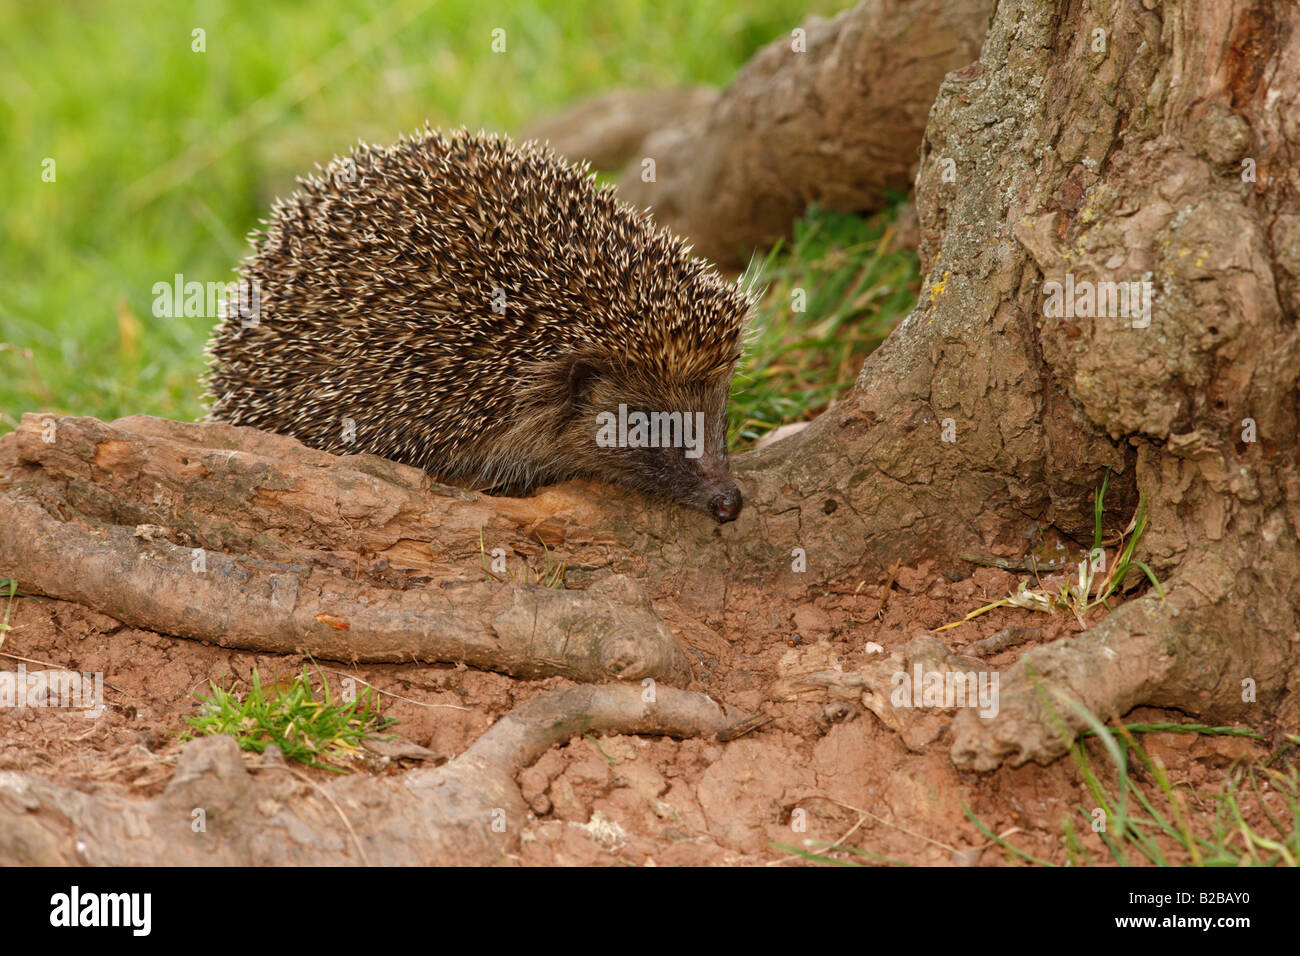 Hedgehog Erinaceus europaeus summer West Midlands - Stock Image